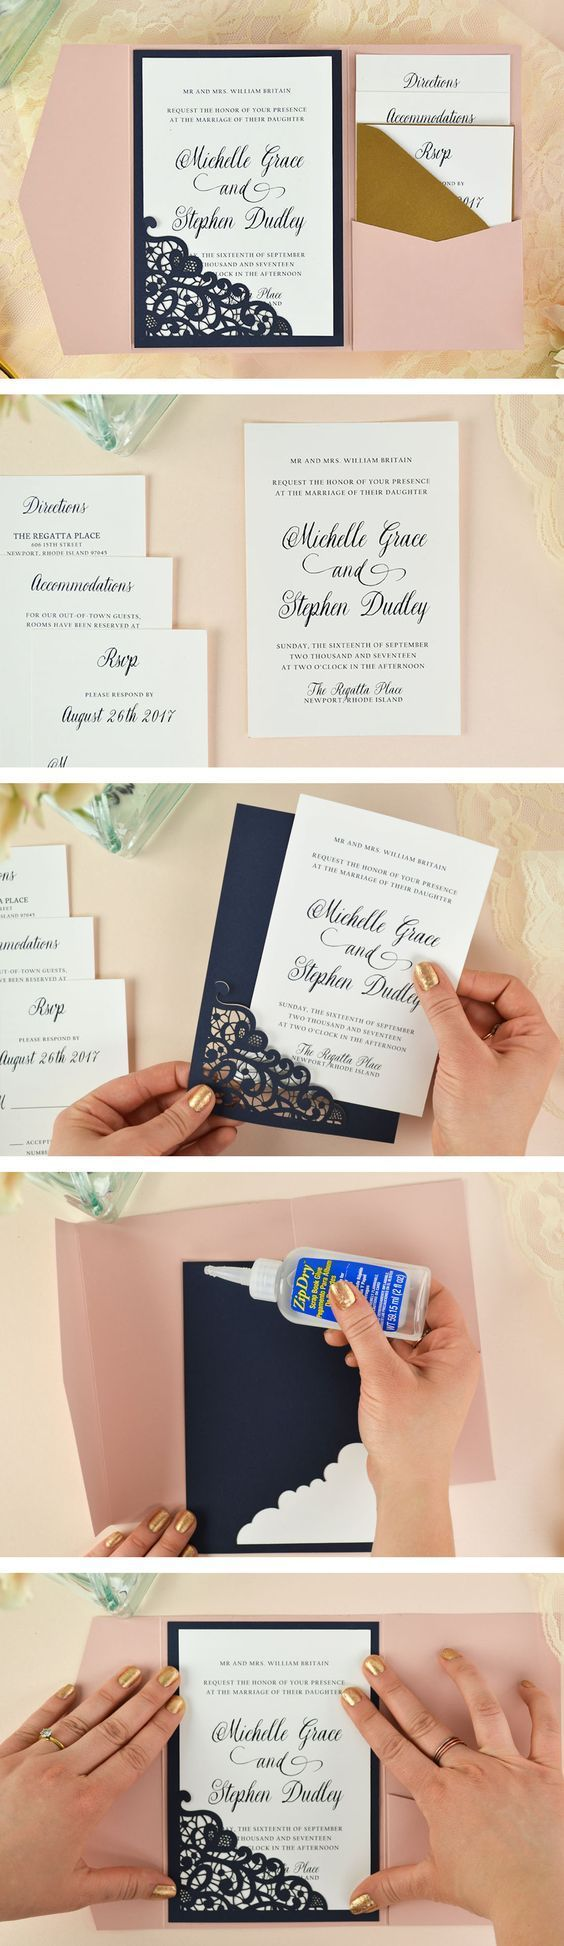 how to address couples on wedding invitations%0A These are so unique and DIY wedding invites  This gives you a link to  vellum paper    DIY Weddings   Pinterest   Vellum paper  Unique and Wedding